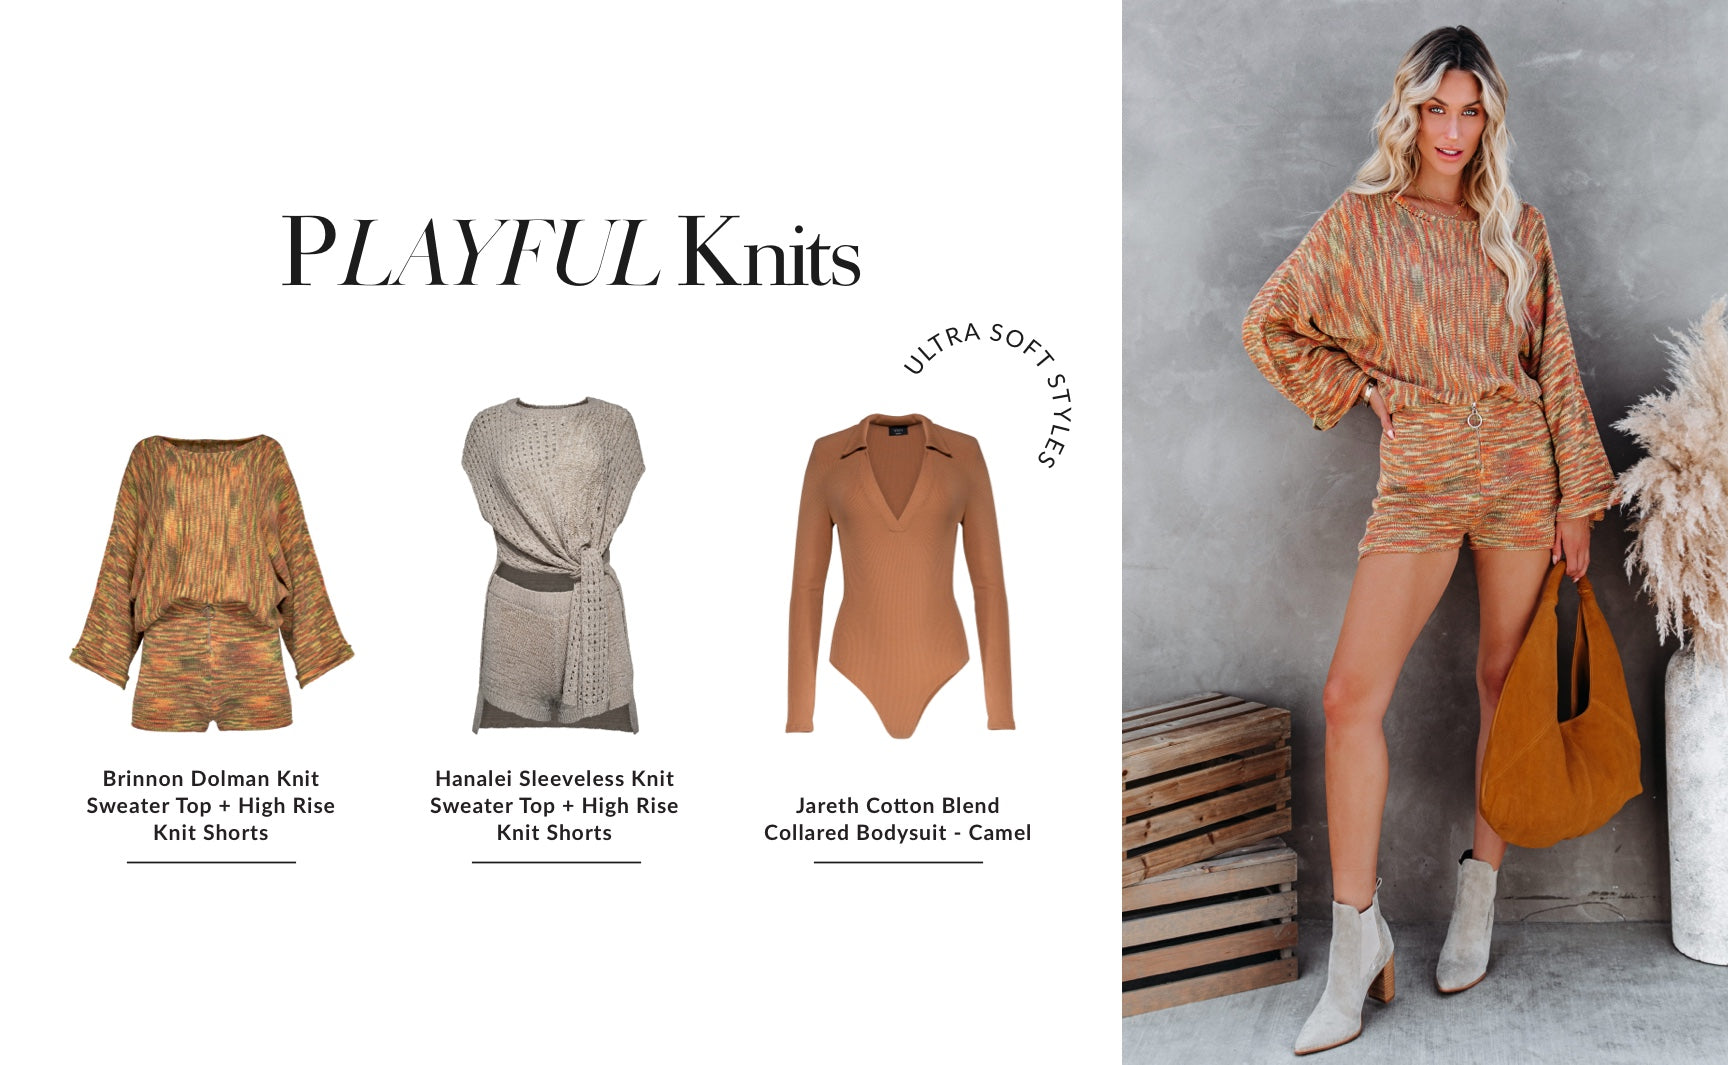 The #1 reason why we love knitwear is because it still feels like you're wearing that beloved 2020 lounge set, disguised in a cuter outfit. Let these ultra soft styles cuddle up to your skin and keep you cozy from 9-5. The chicness of a collar detail or a fun print gives this classic material an updated twist. Shop Playful Knits